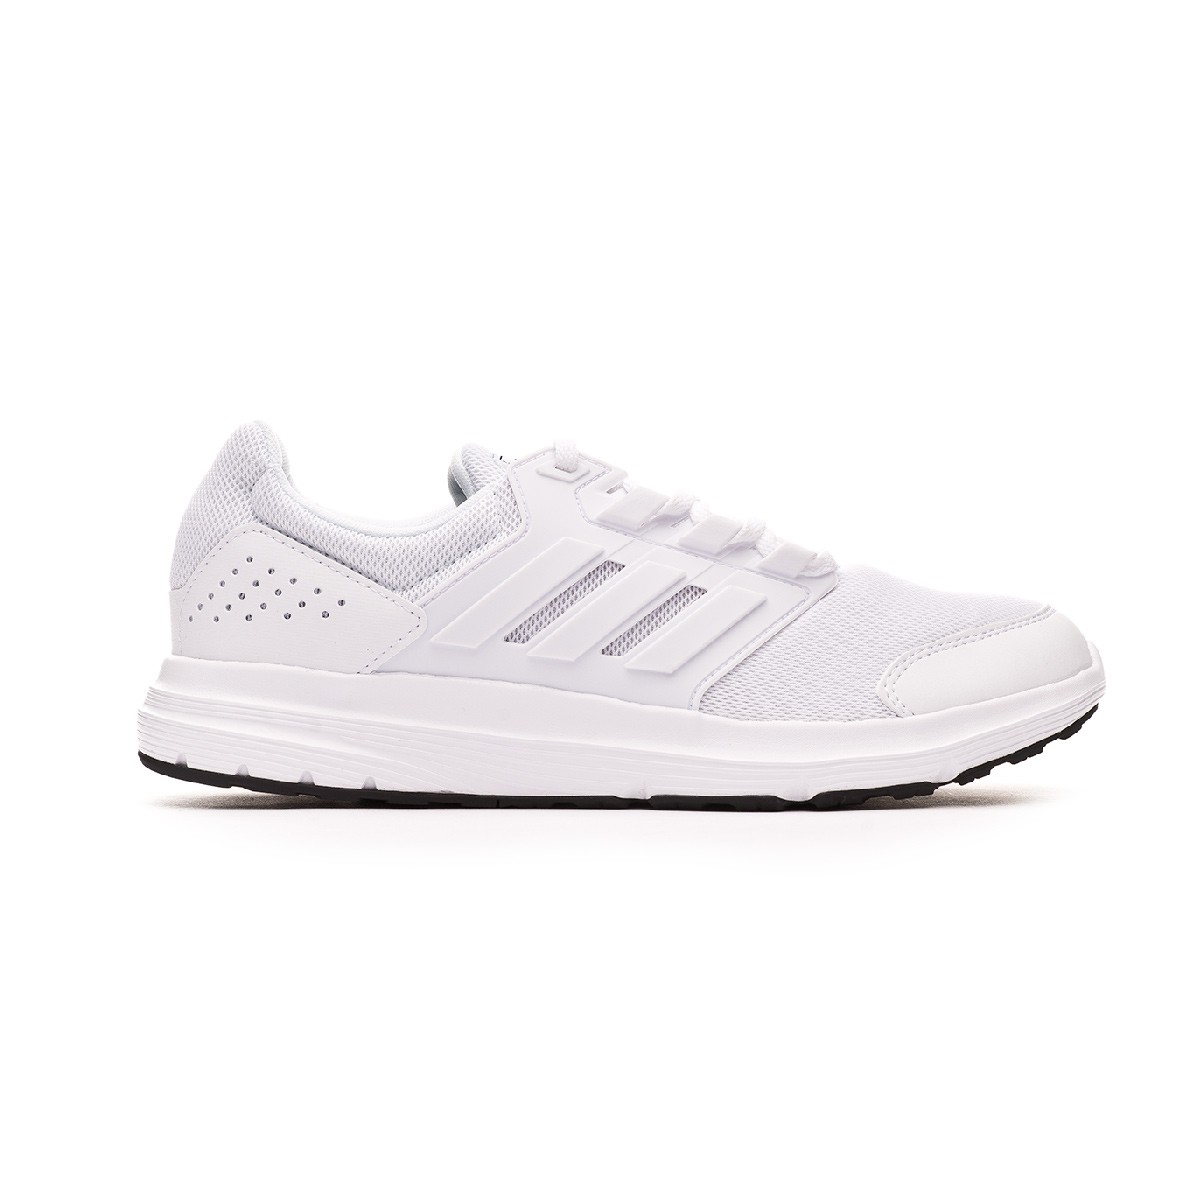 adidas Galaxy 4 White | very.co.uk